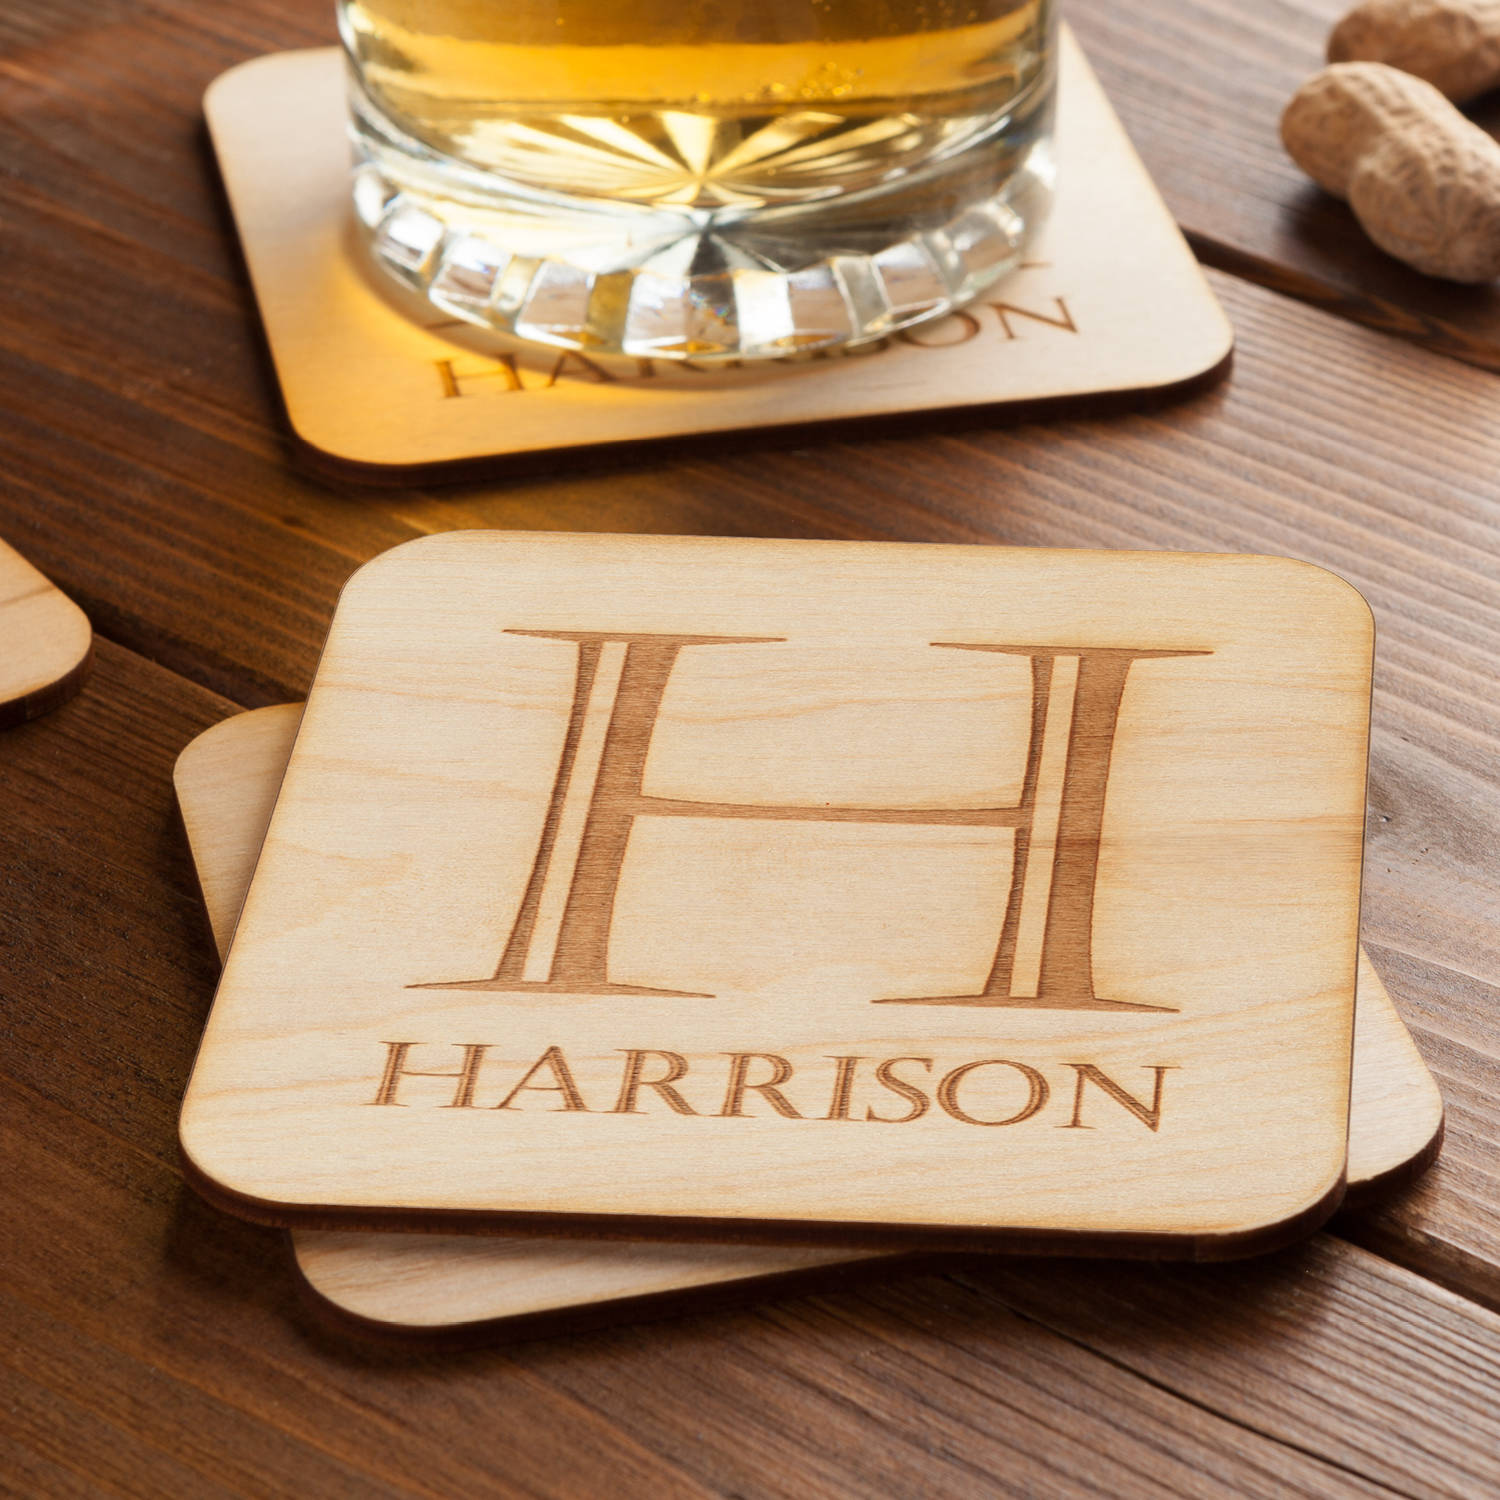 Initial and Name Set of 4 Personalized Wood Coasters